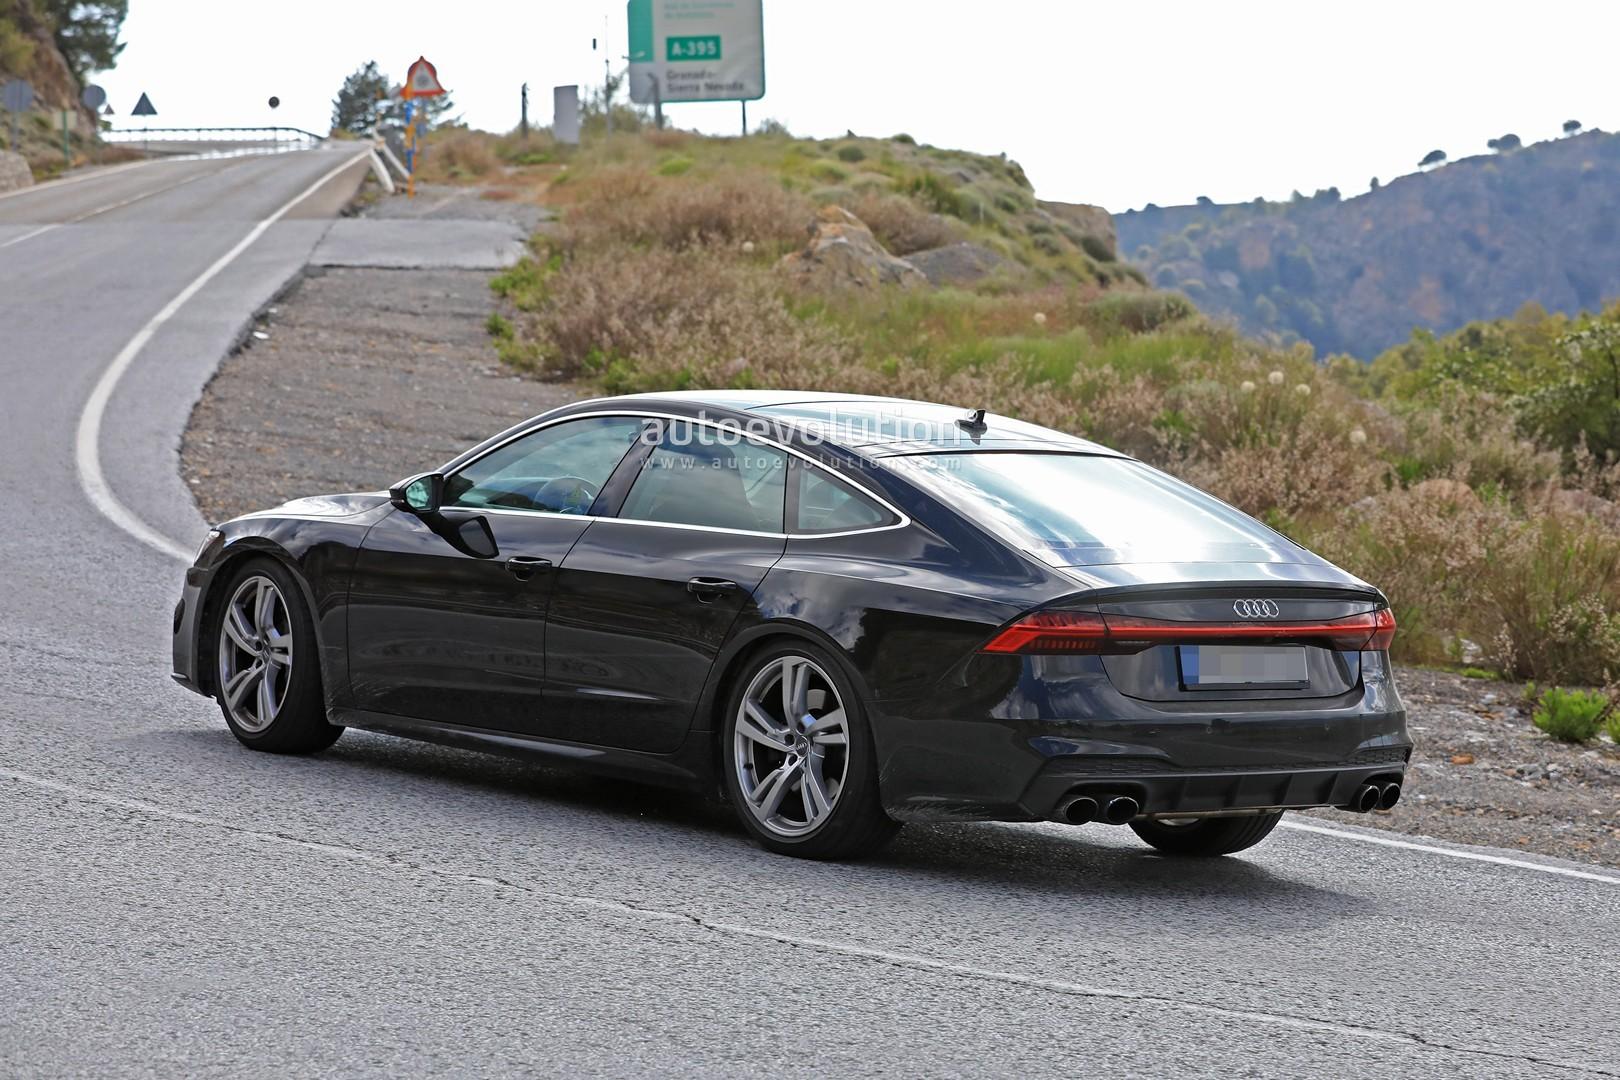 2019 audi s7 sportback spied during high altitude testing. Black Bedroom Furniture Sets. Home Design Ideas